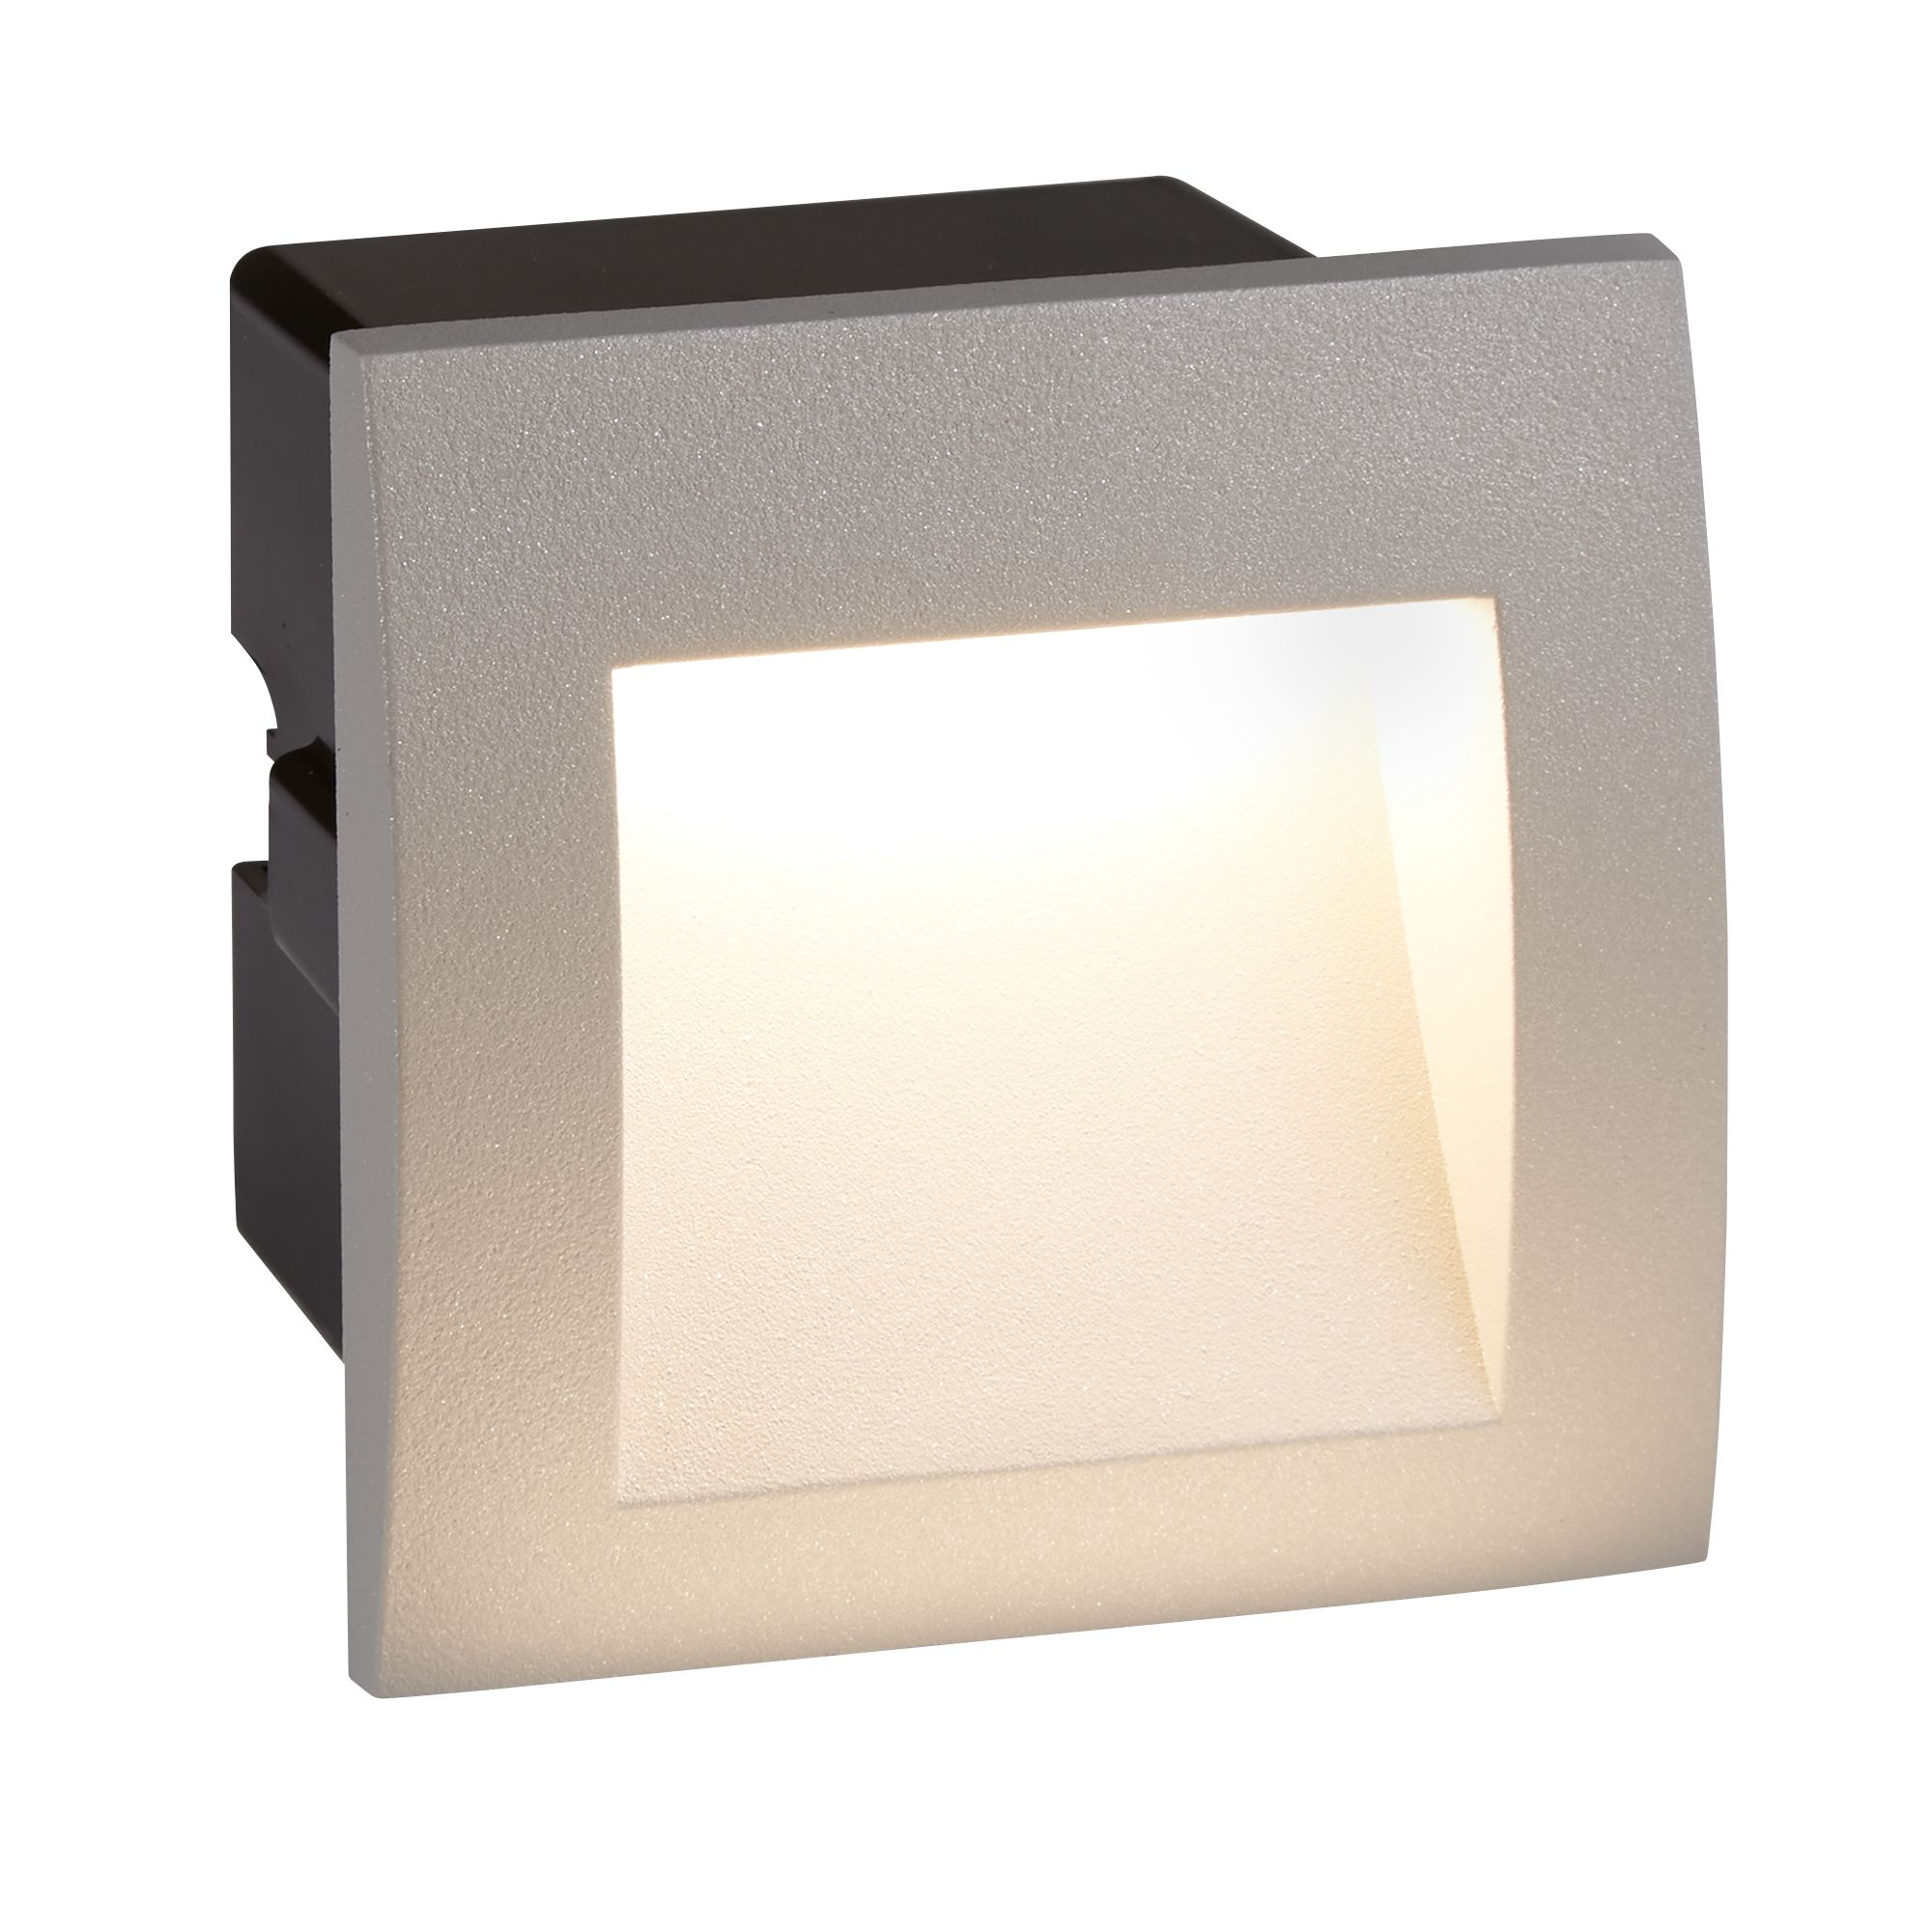 Searchlight 0661GY Ankle W/Lgt Sq 1W